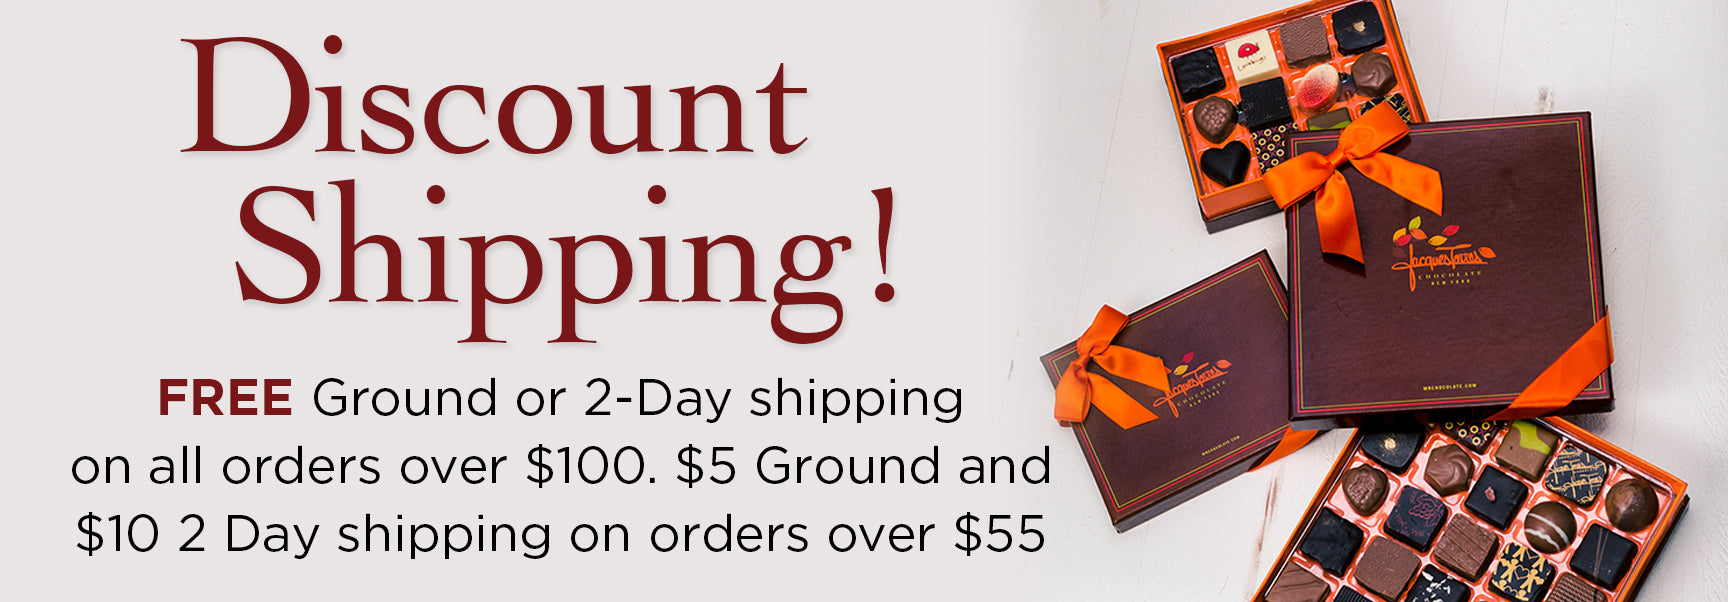 Discount Shipping Free Ground and 2 Day Shipping over $100